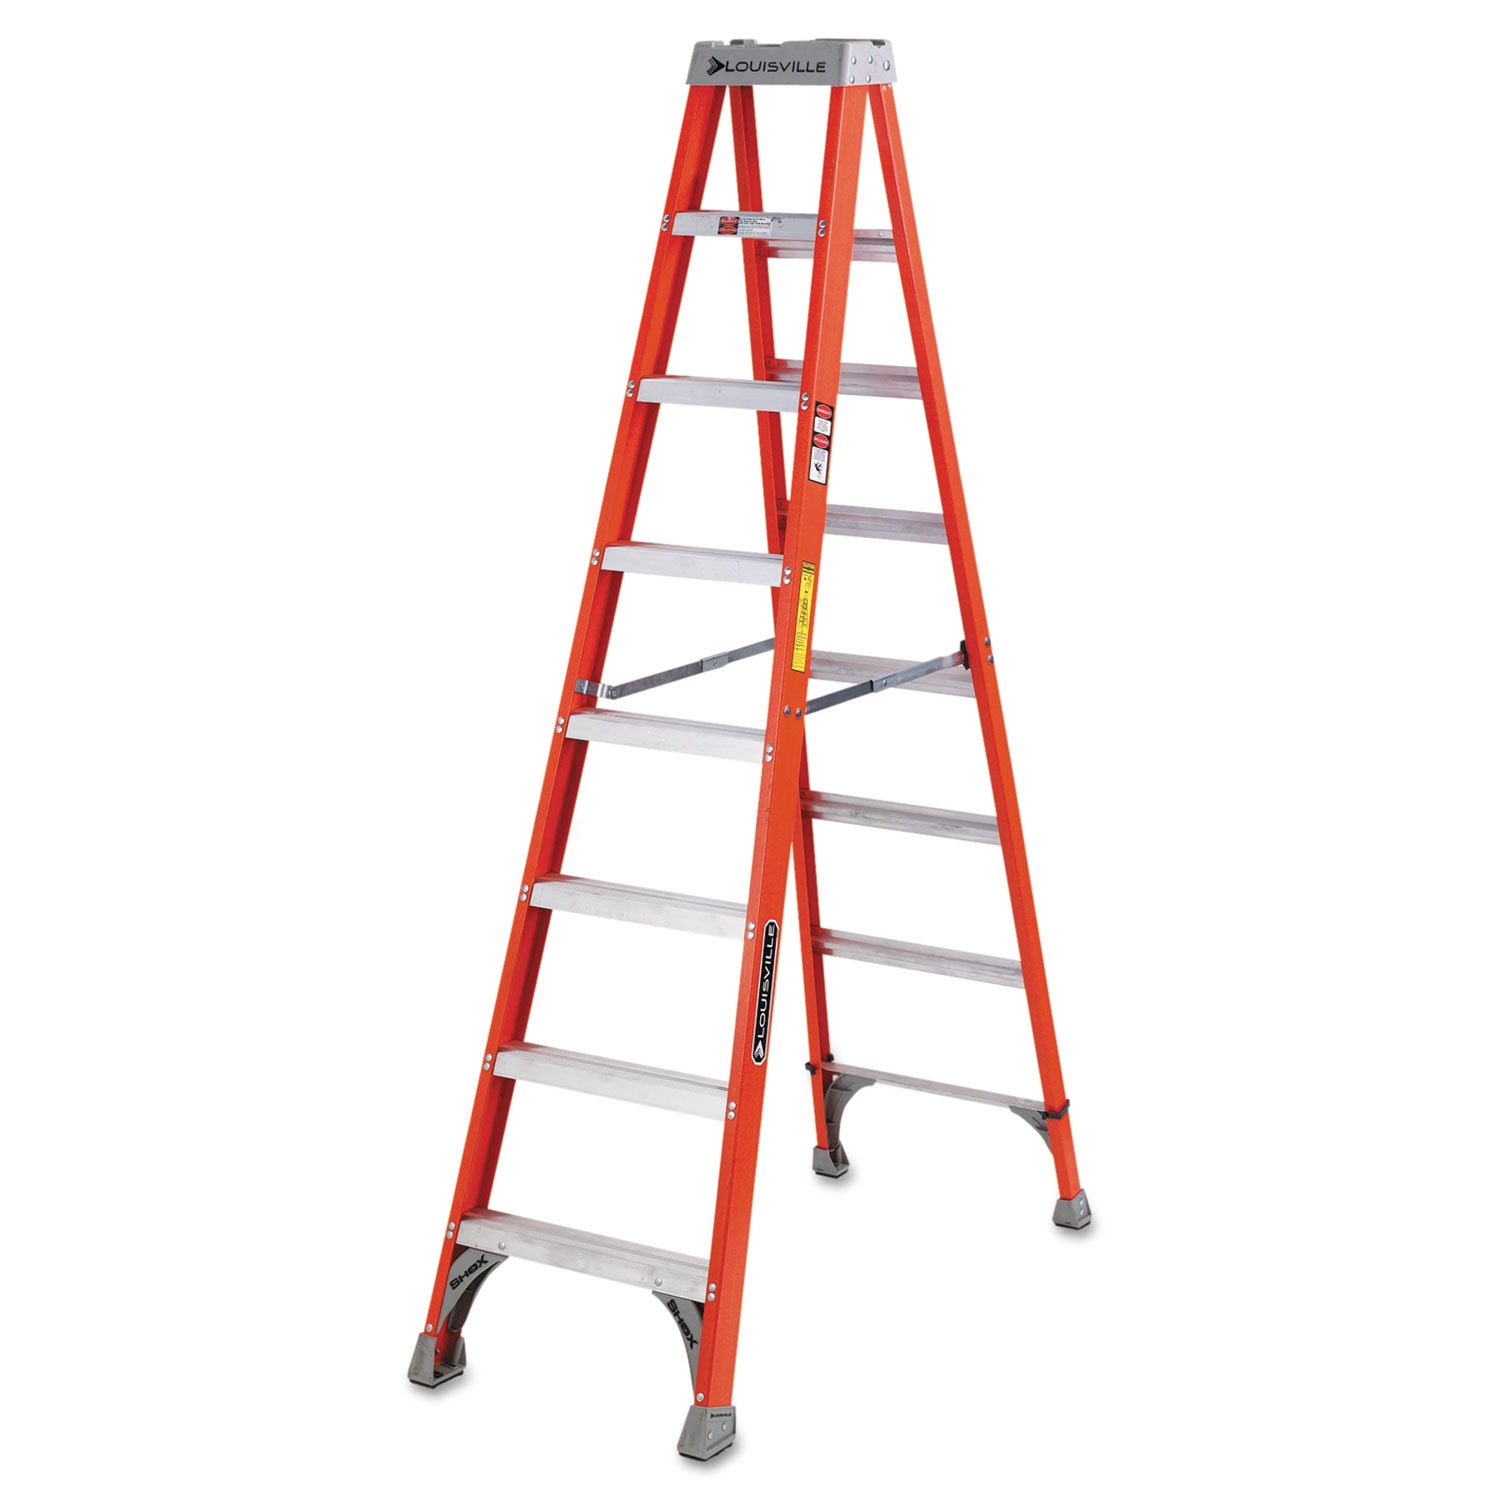 FS1500 Series Fiberglass Step Ladder, 8 ft, 5-Step, Red